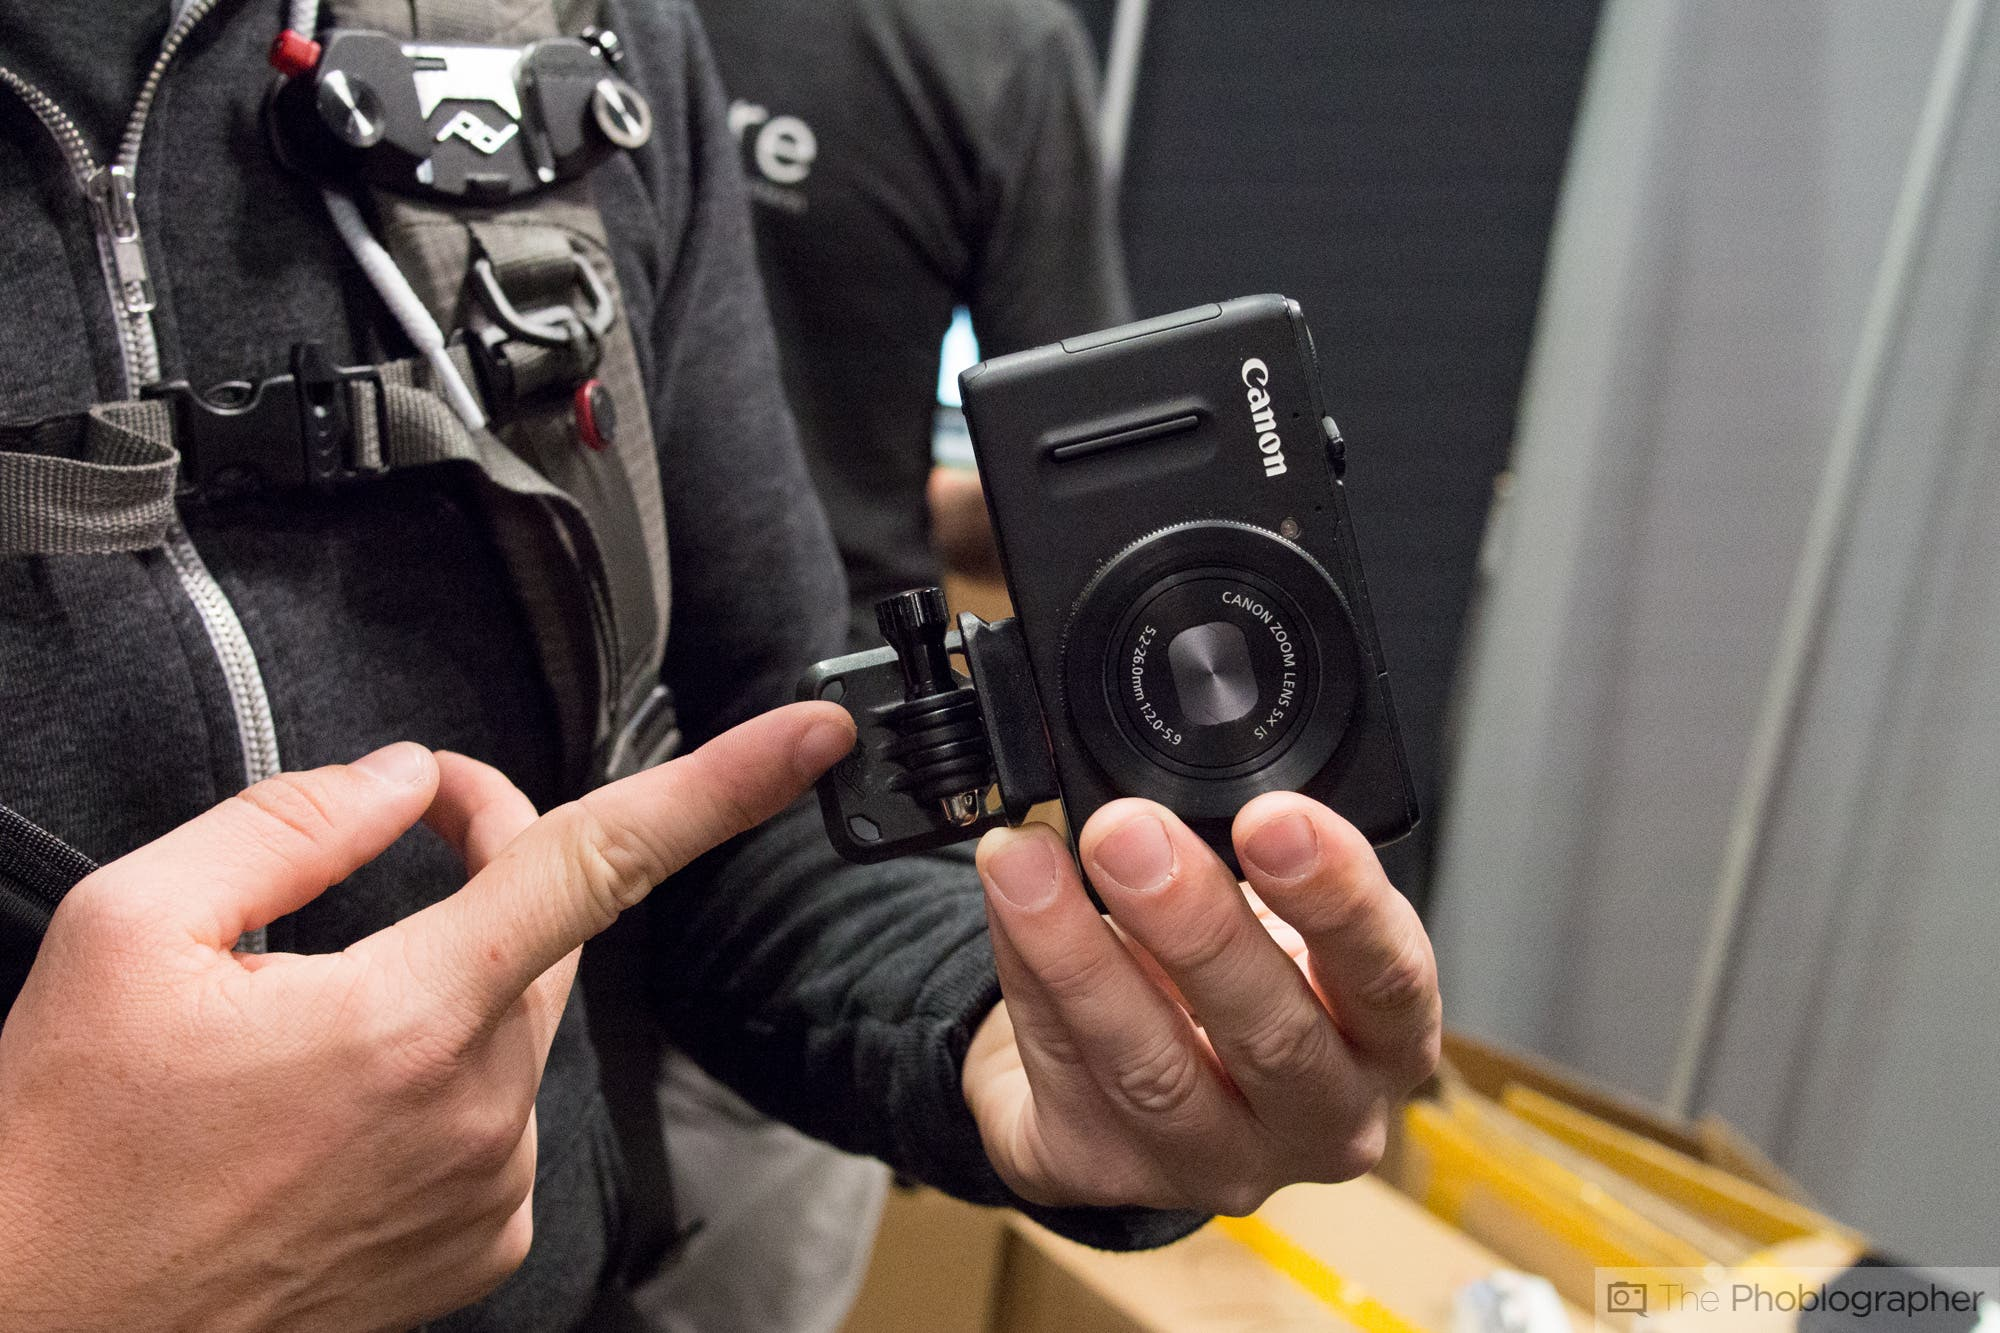 Peak Design's POV Kit Lets You Use Any Camera Like a GoPro